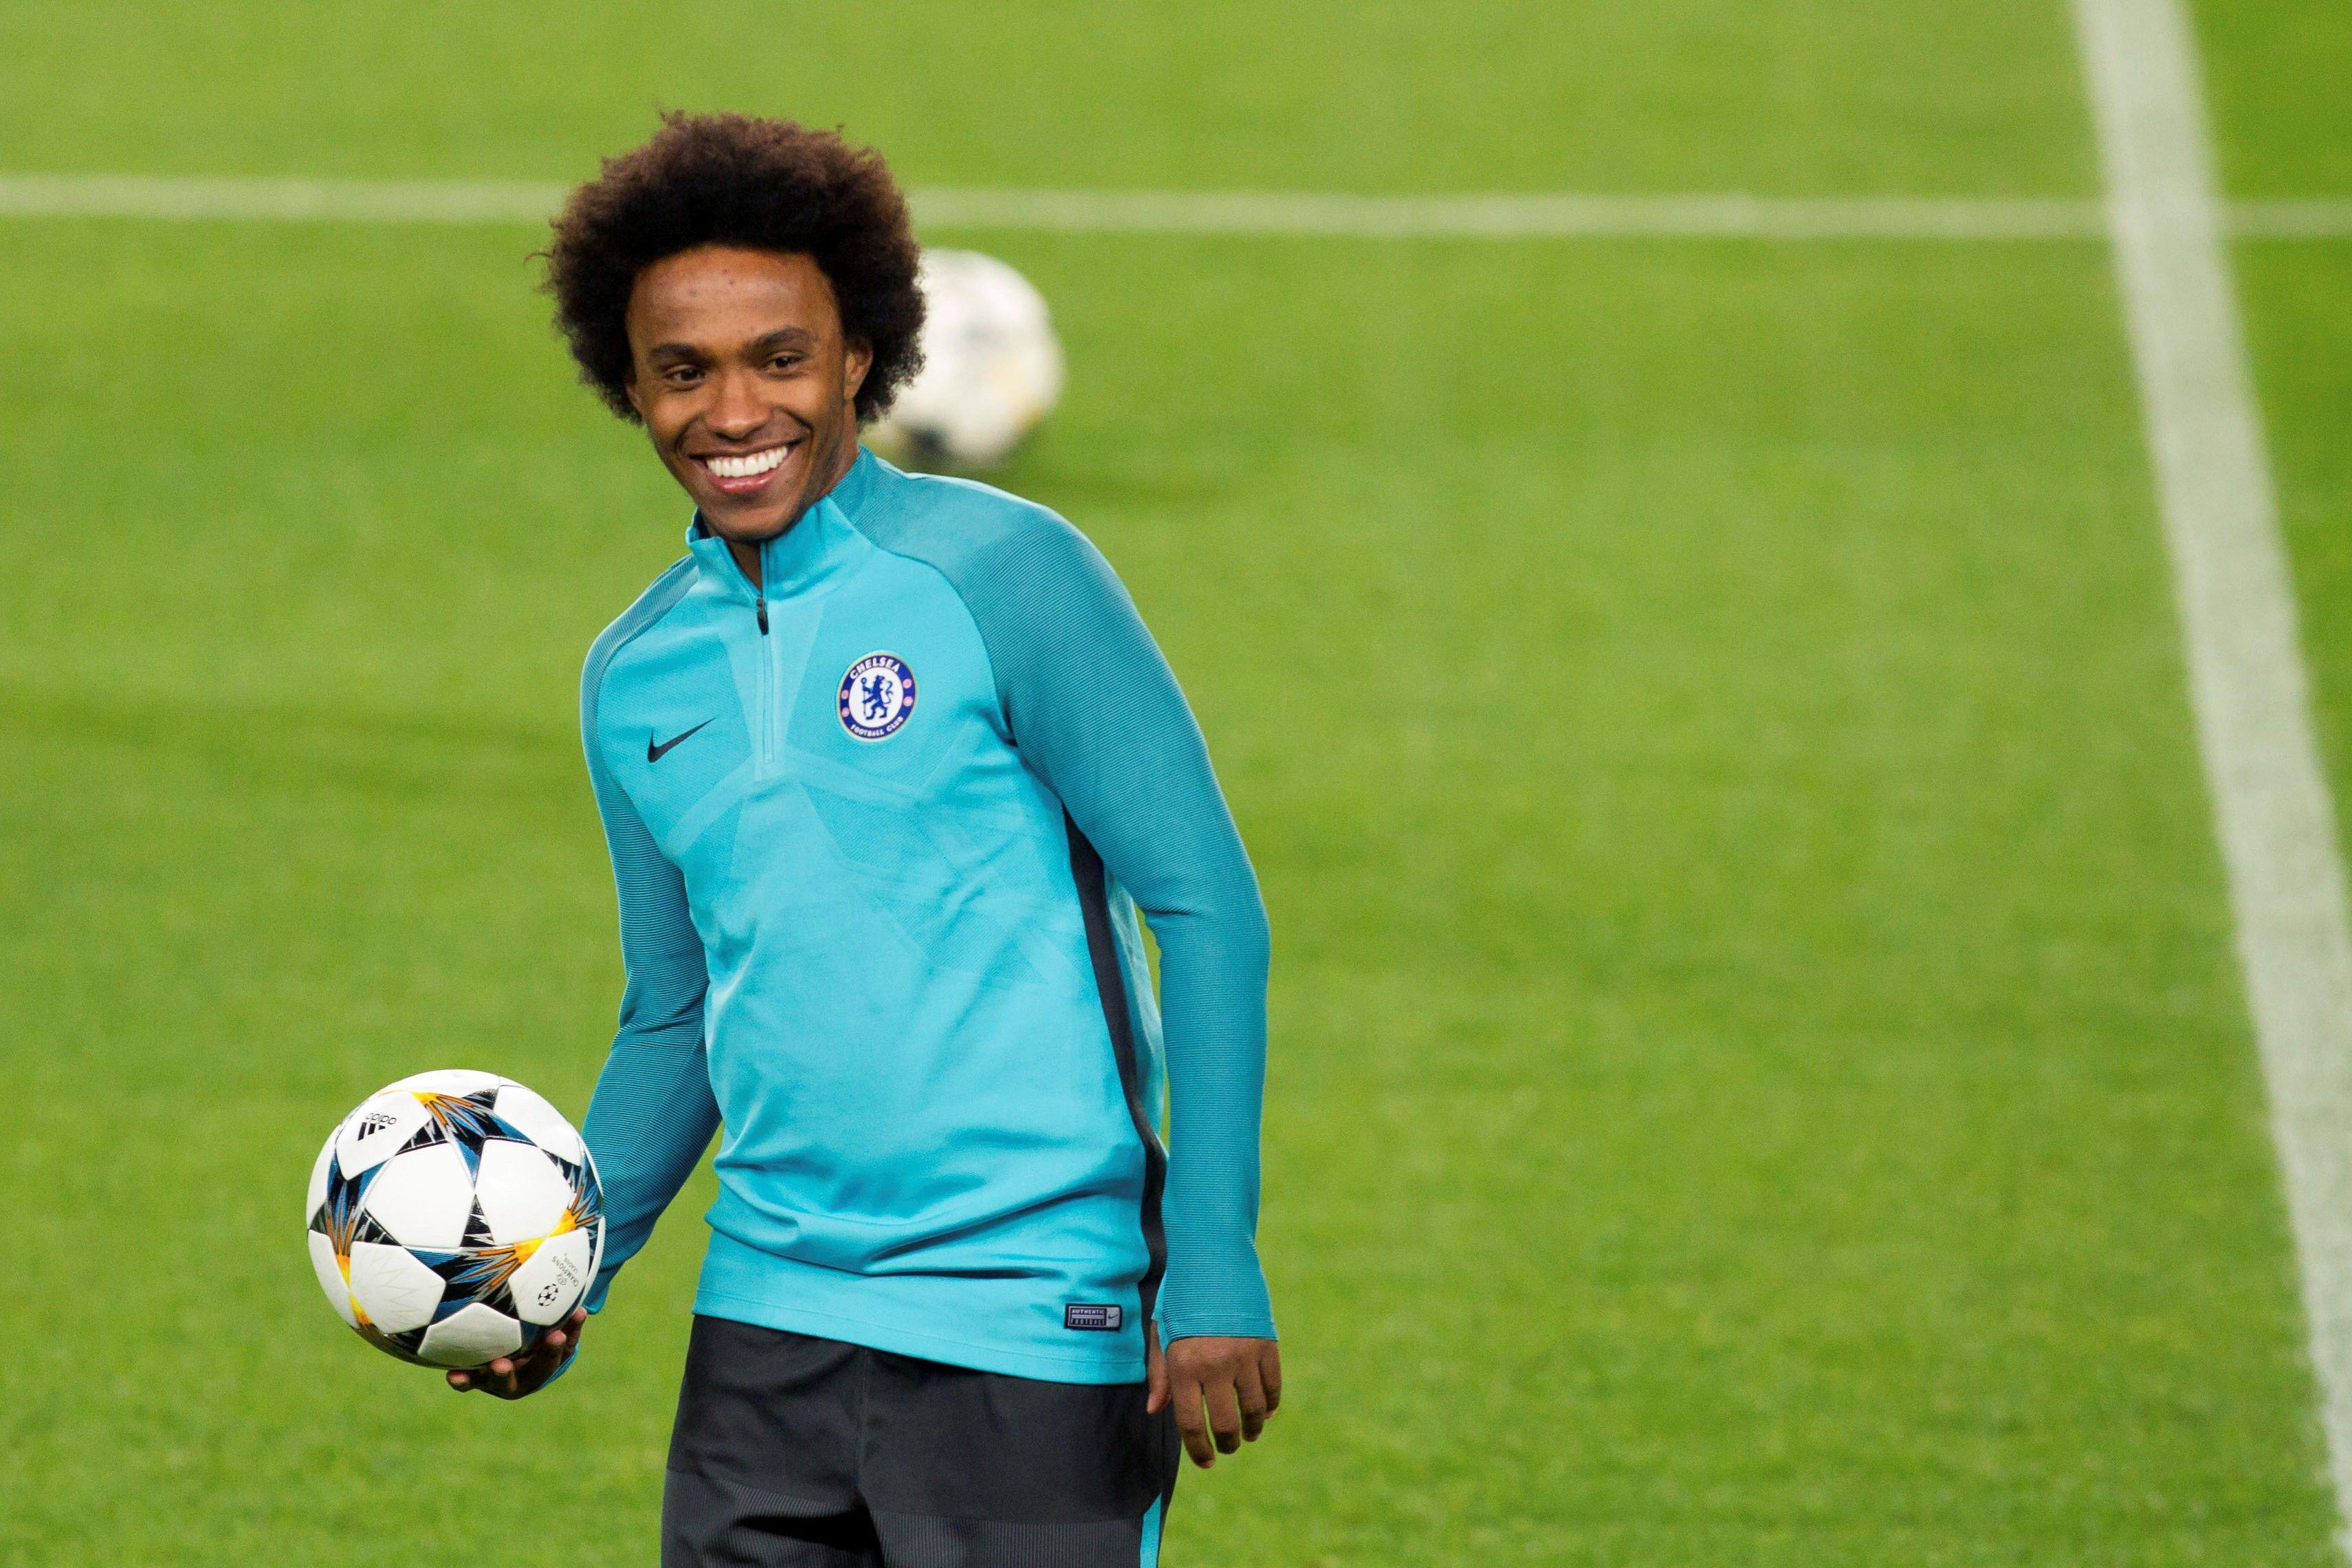 Manchester United boss Jose Mourinho wants £60million Chelsea star Willian this summer